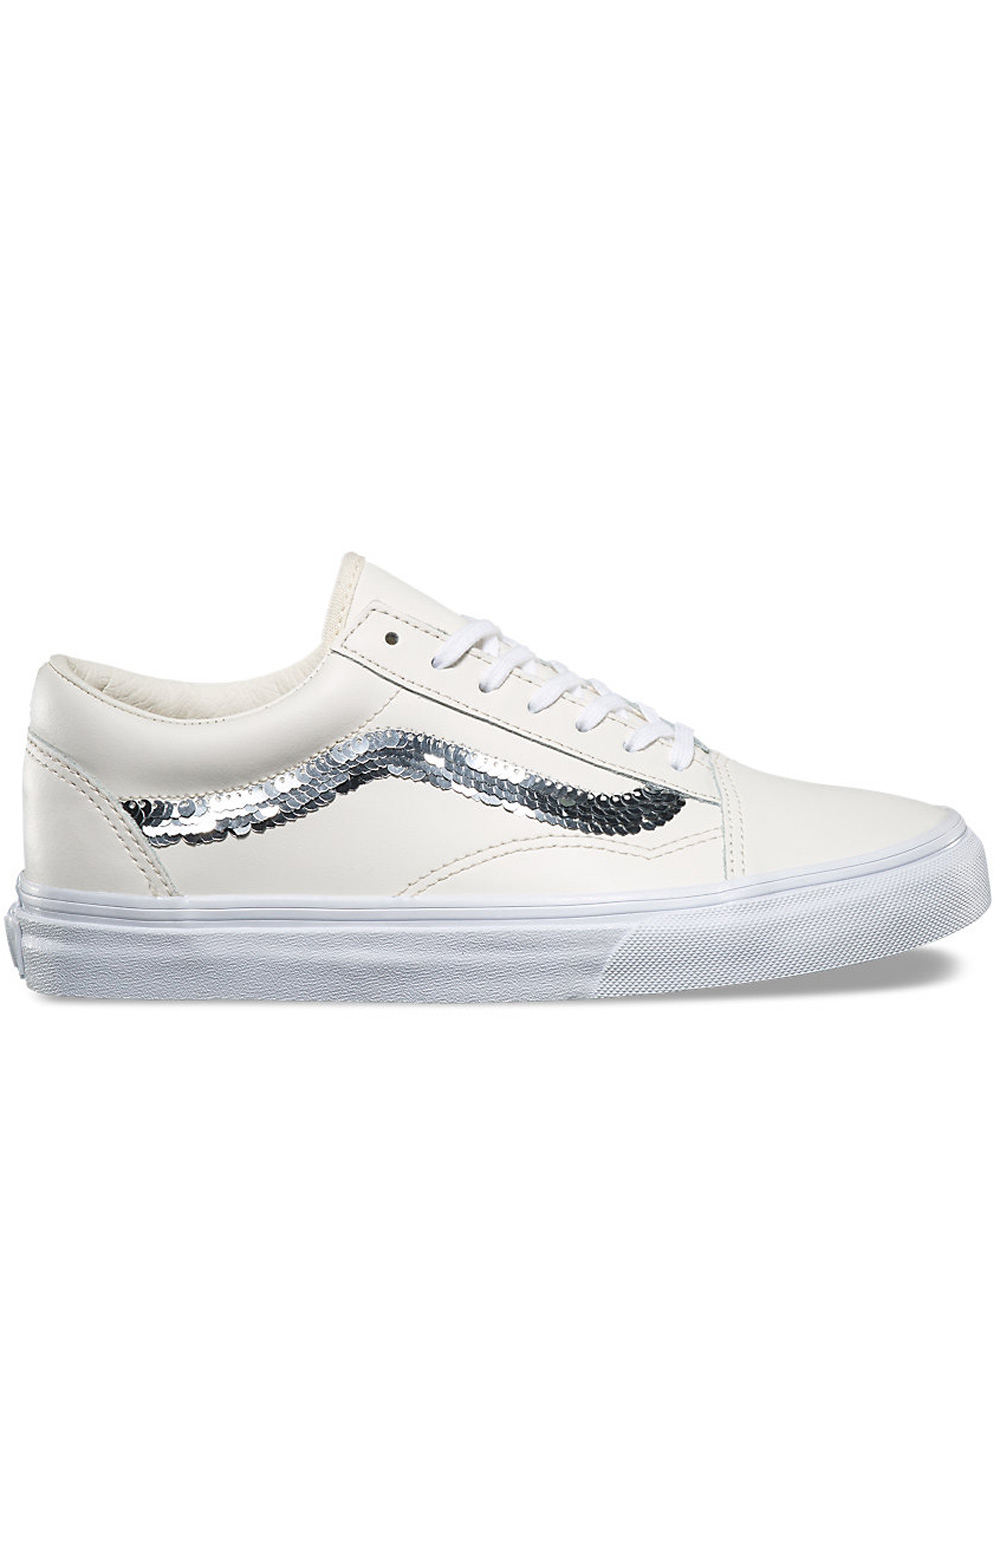 (8G1QVY) Old Skool Shiny Sequins Shoe - Marshmallow